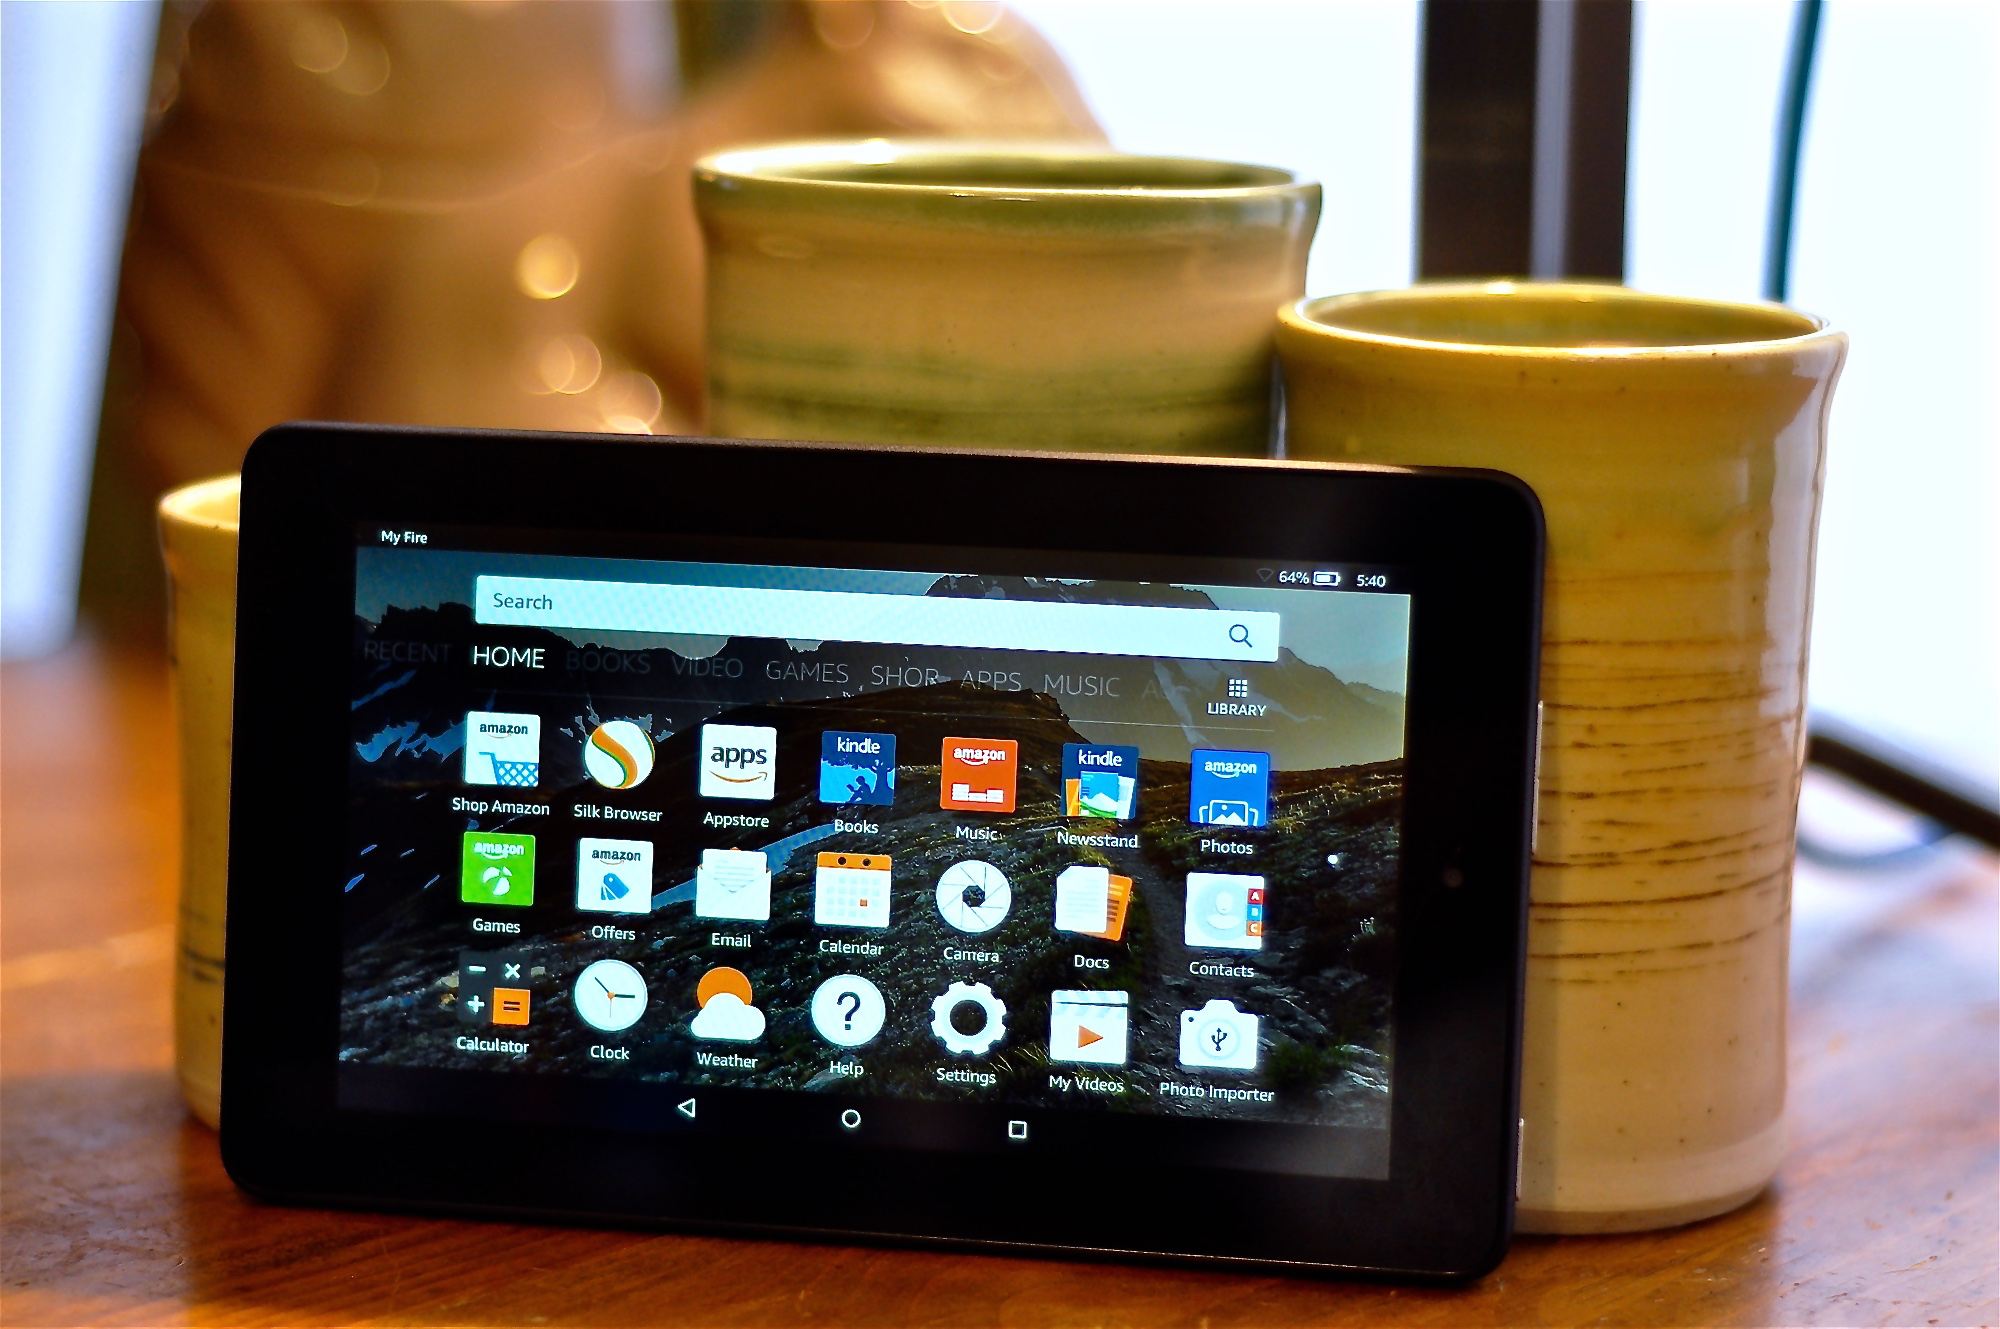 Testing Amazon S 50 Fire Tablet Here S What To Expect From This Budget Device Geekwire